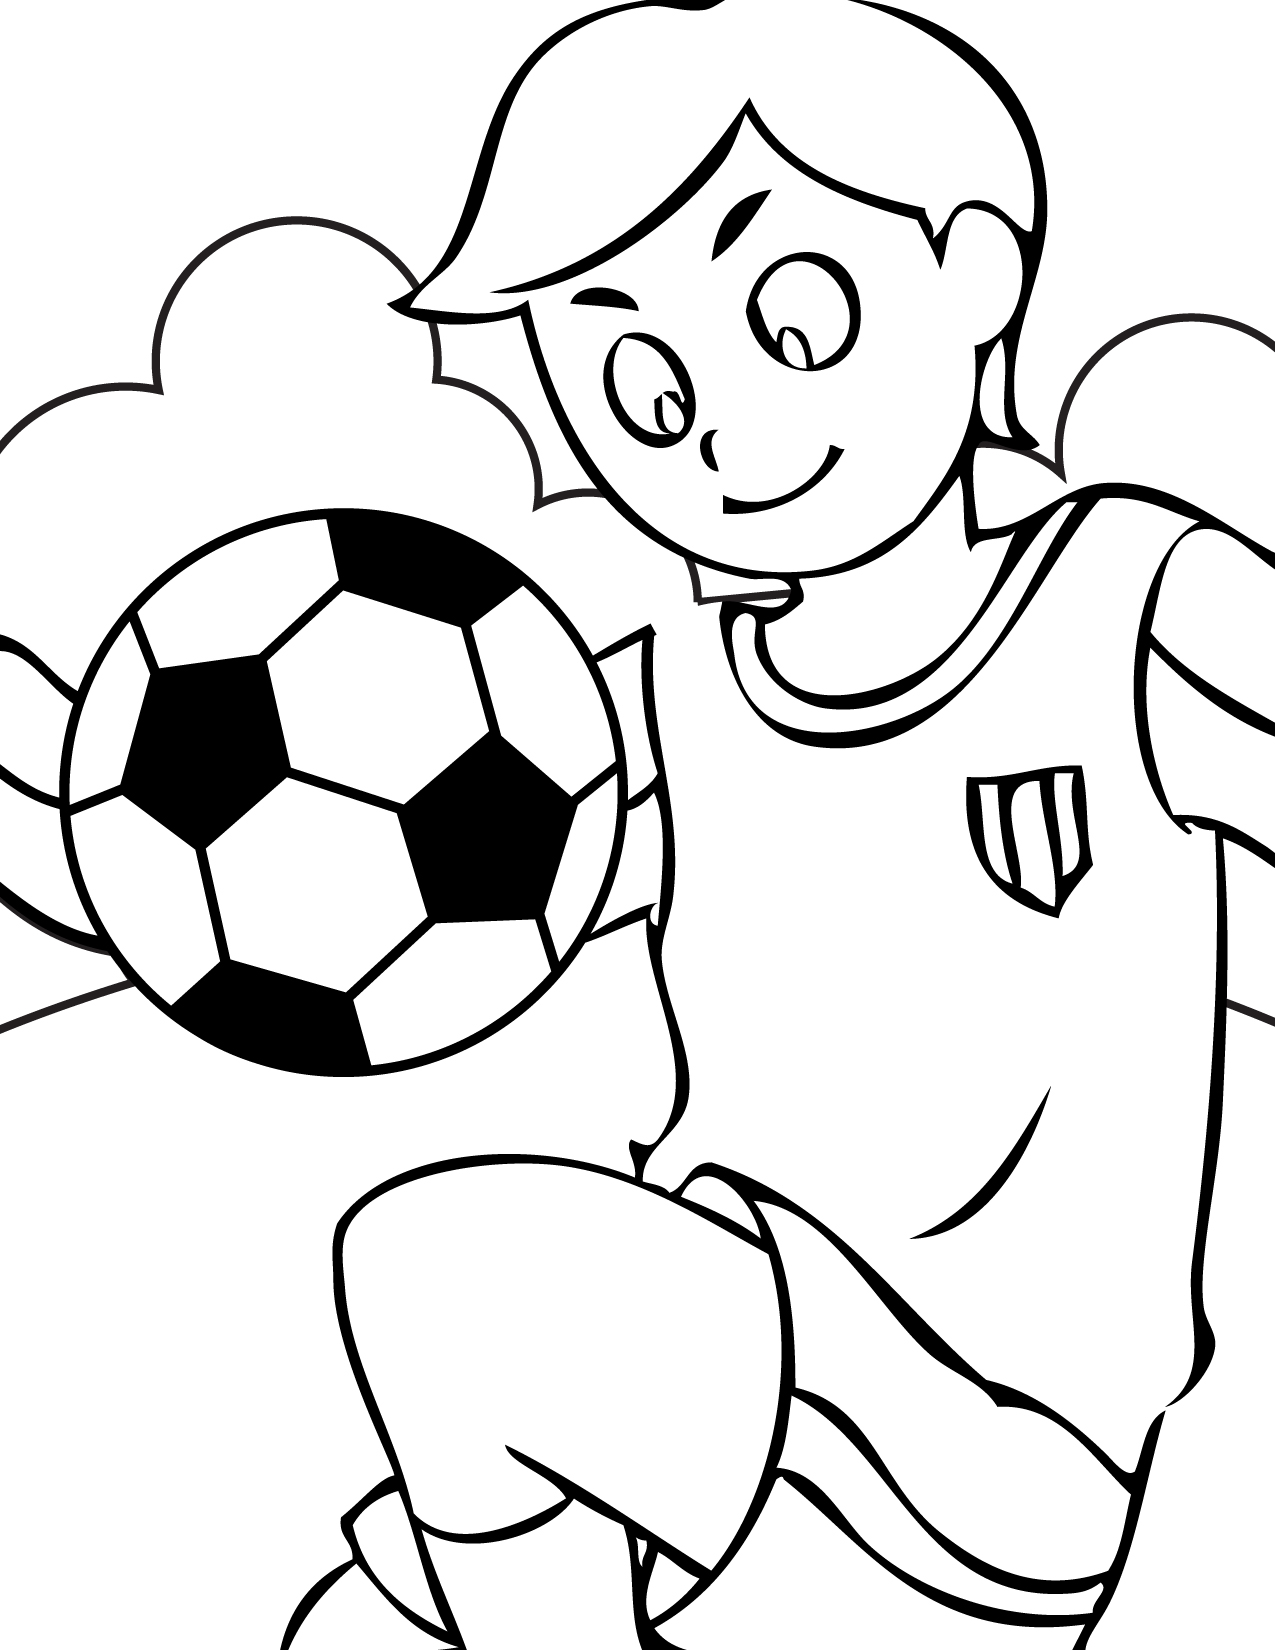 sports coloring pages free printable sports coloring pages for kids coloring pages sports